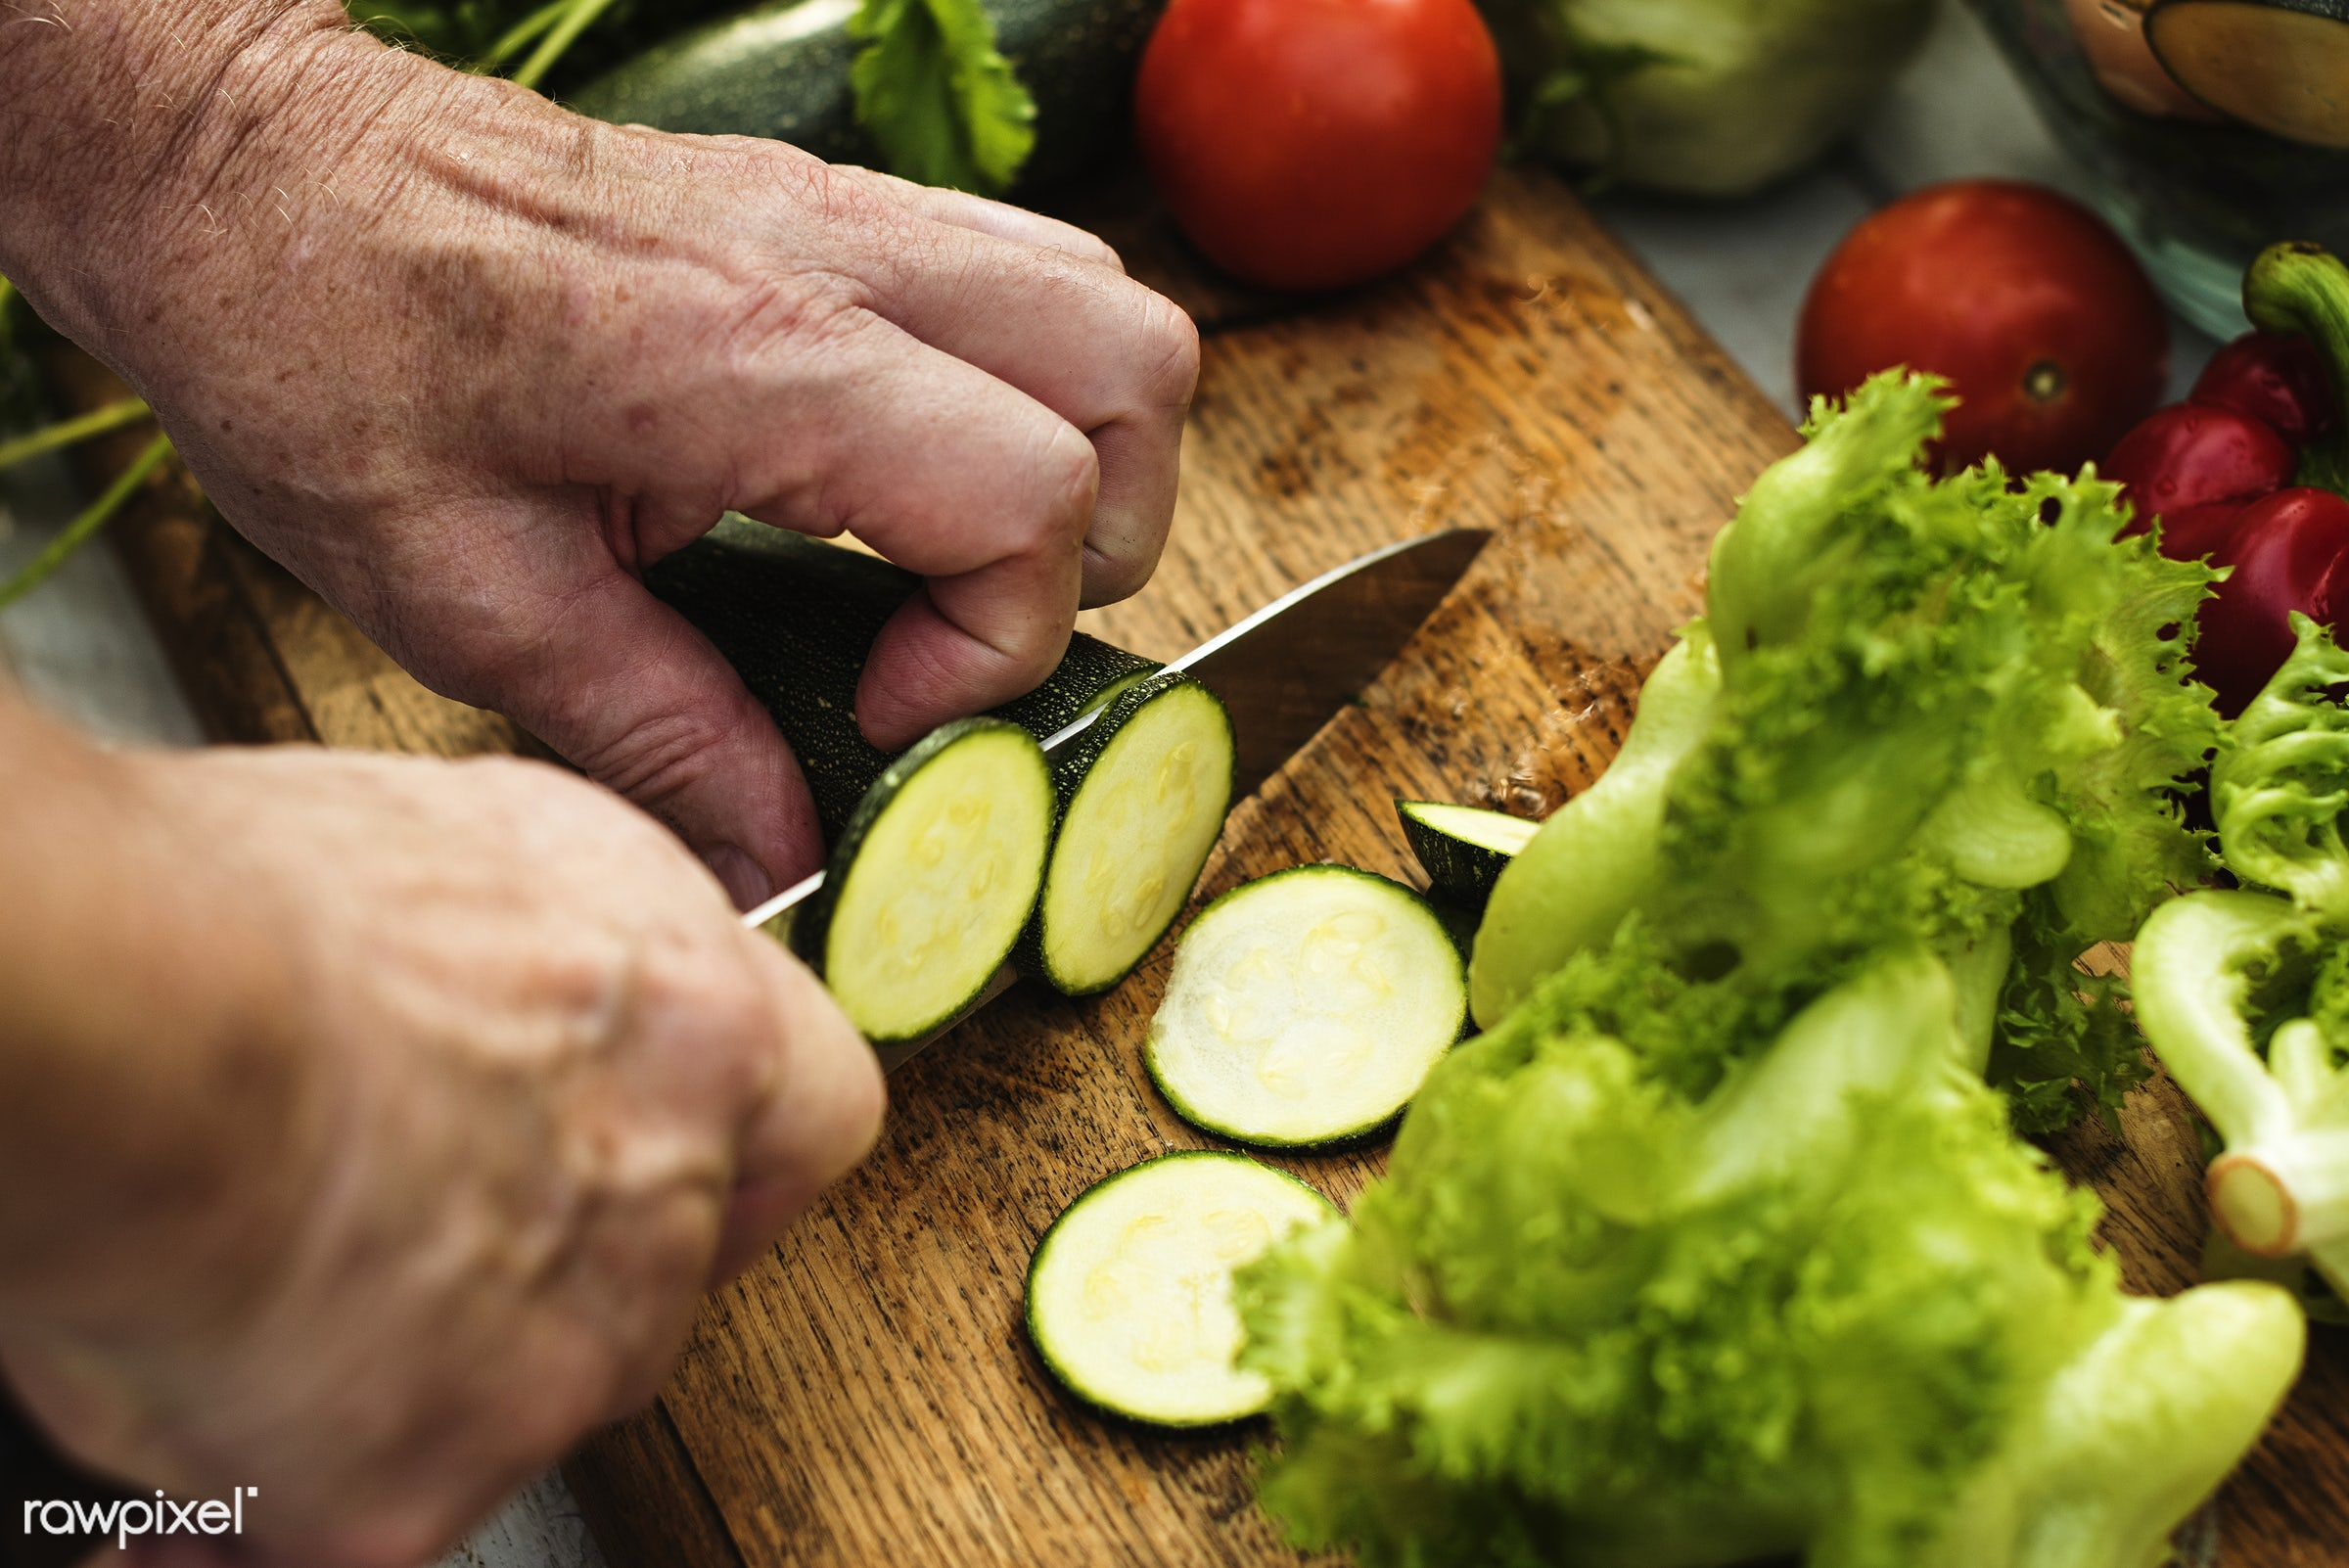 diverse, real, zucchini, hands, fresh, cooking, various, closeup, meal, superfood, cut board, chopping, prepare, cutting,...